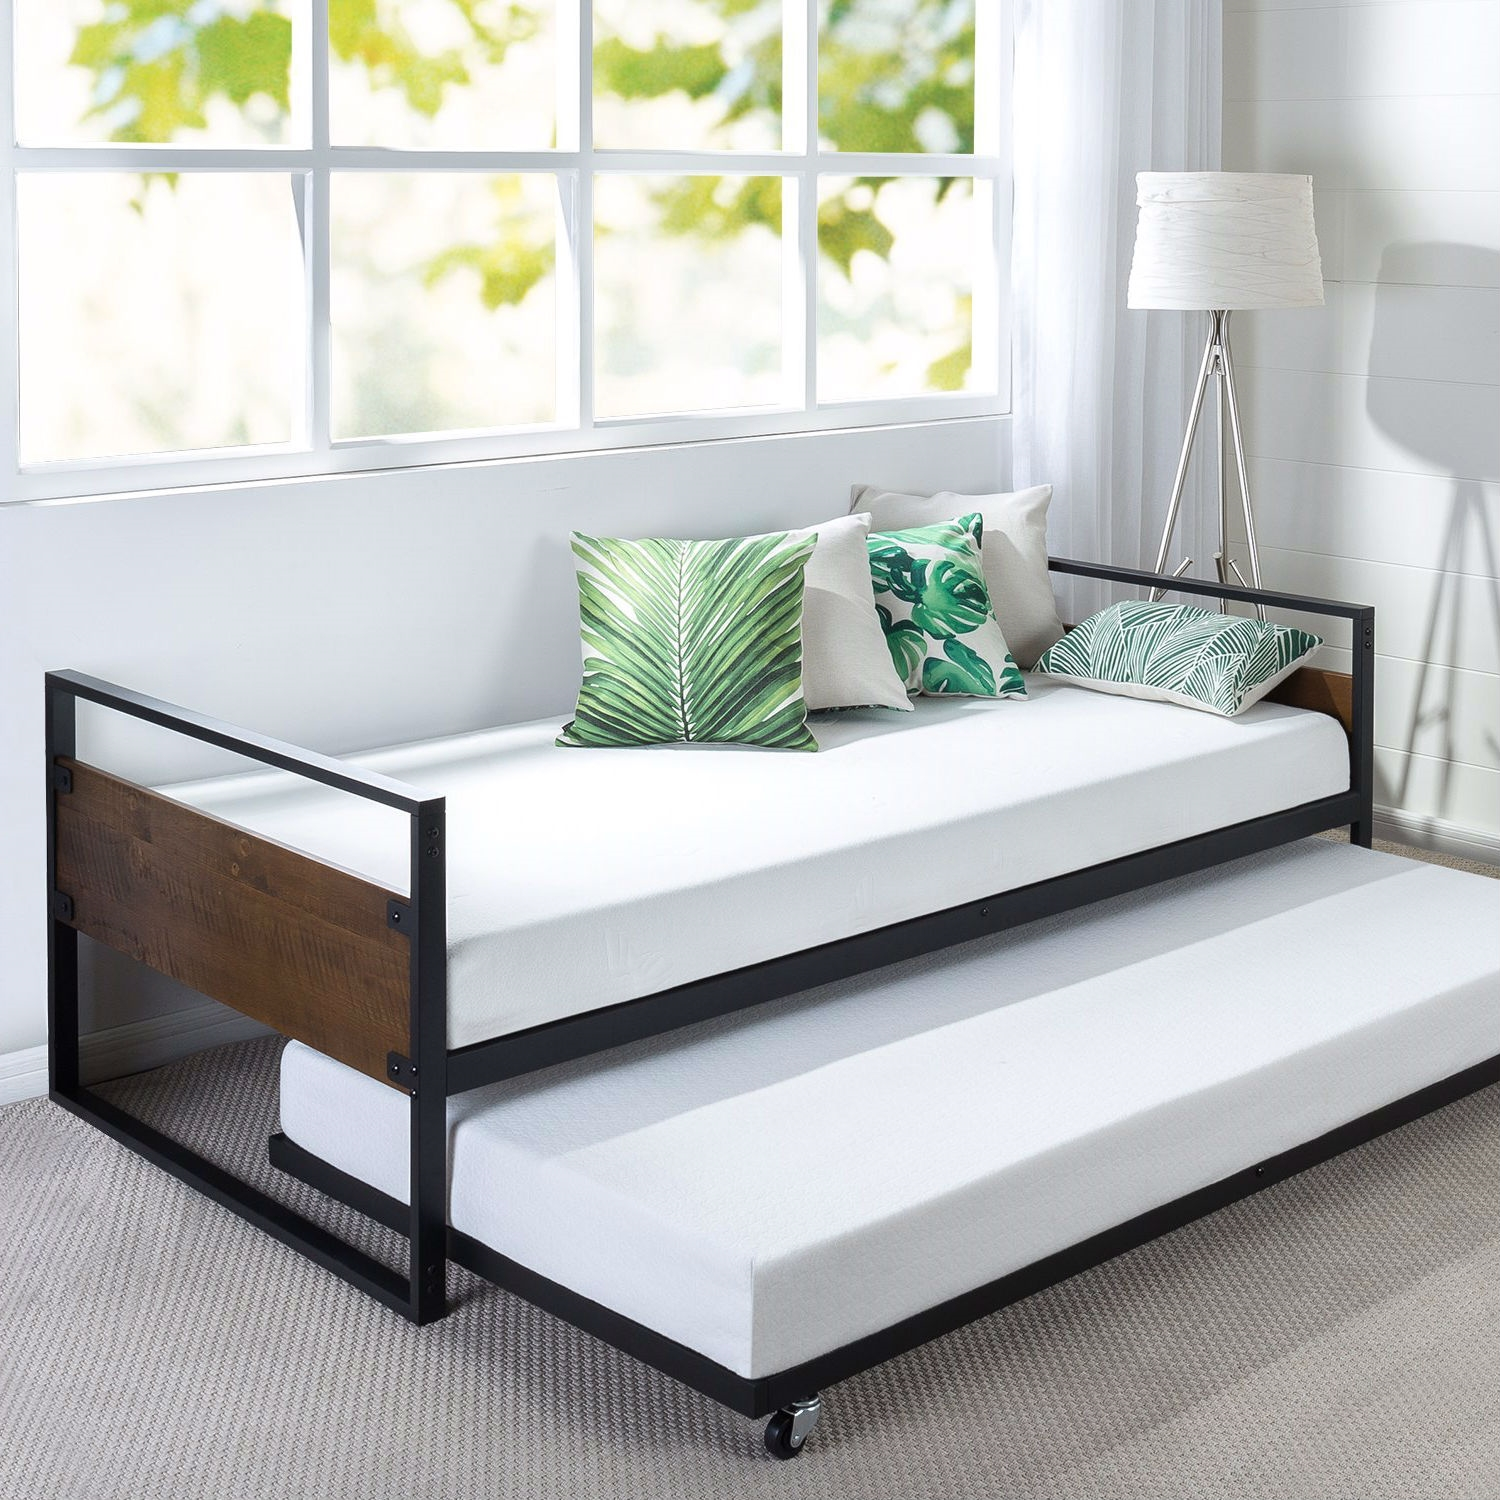 Twin size Metal Wood Daybed Frame with Roll Out Trundle Bed ...